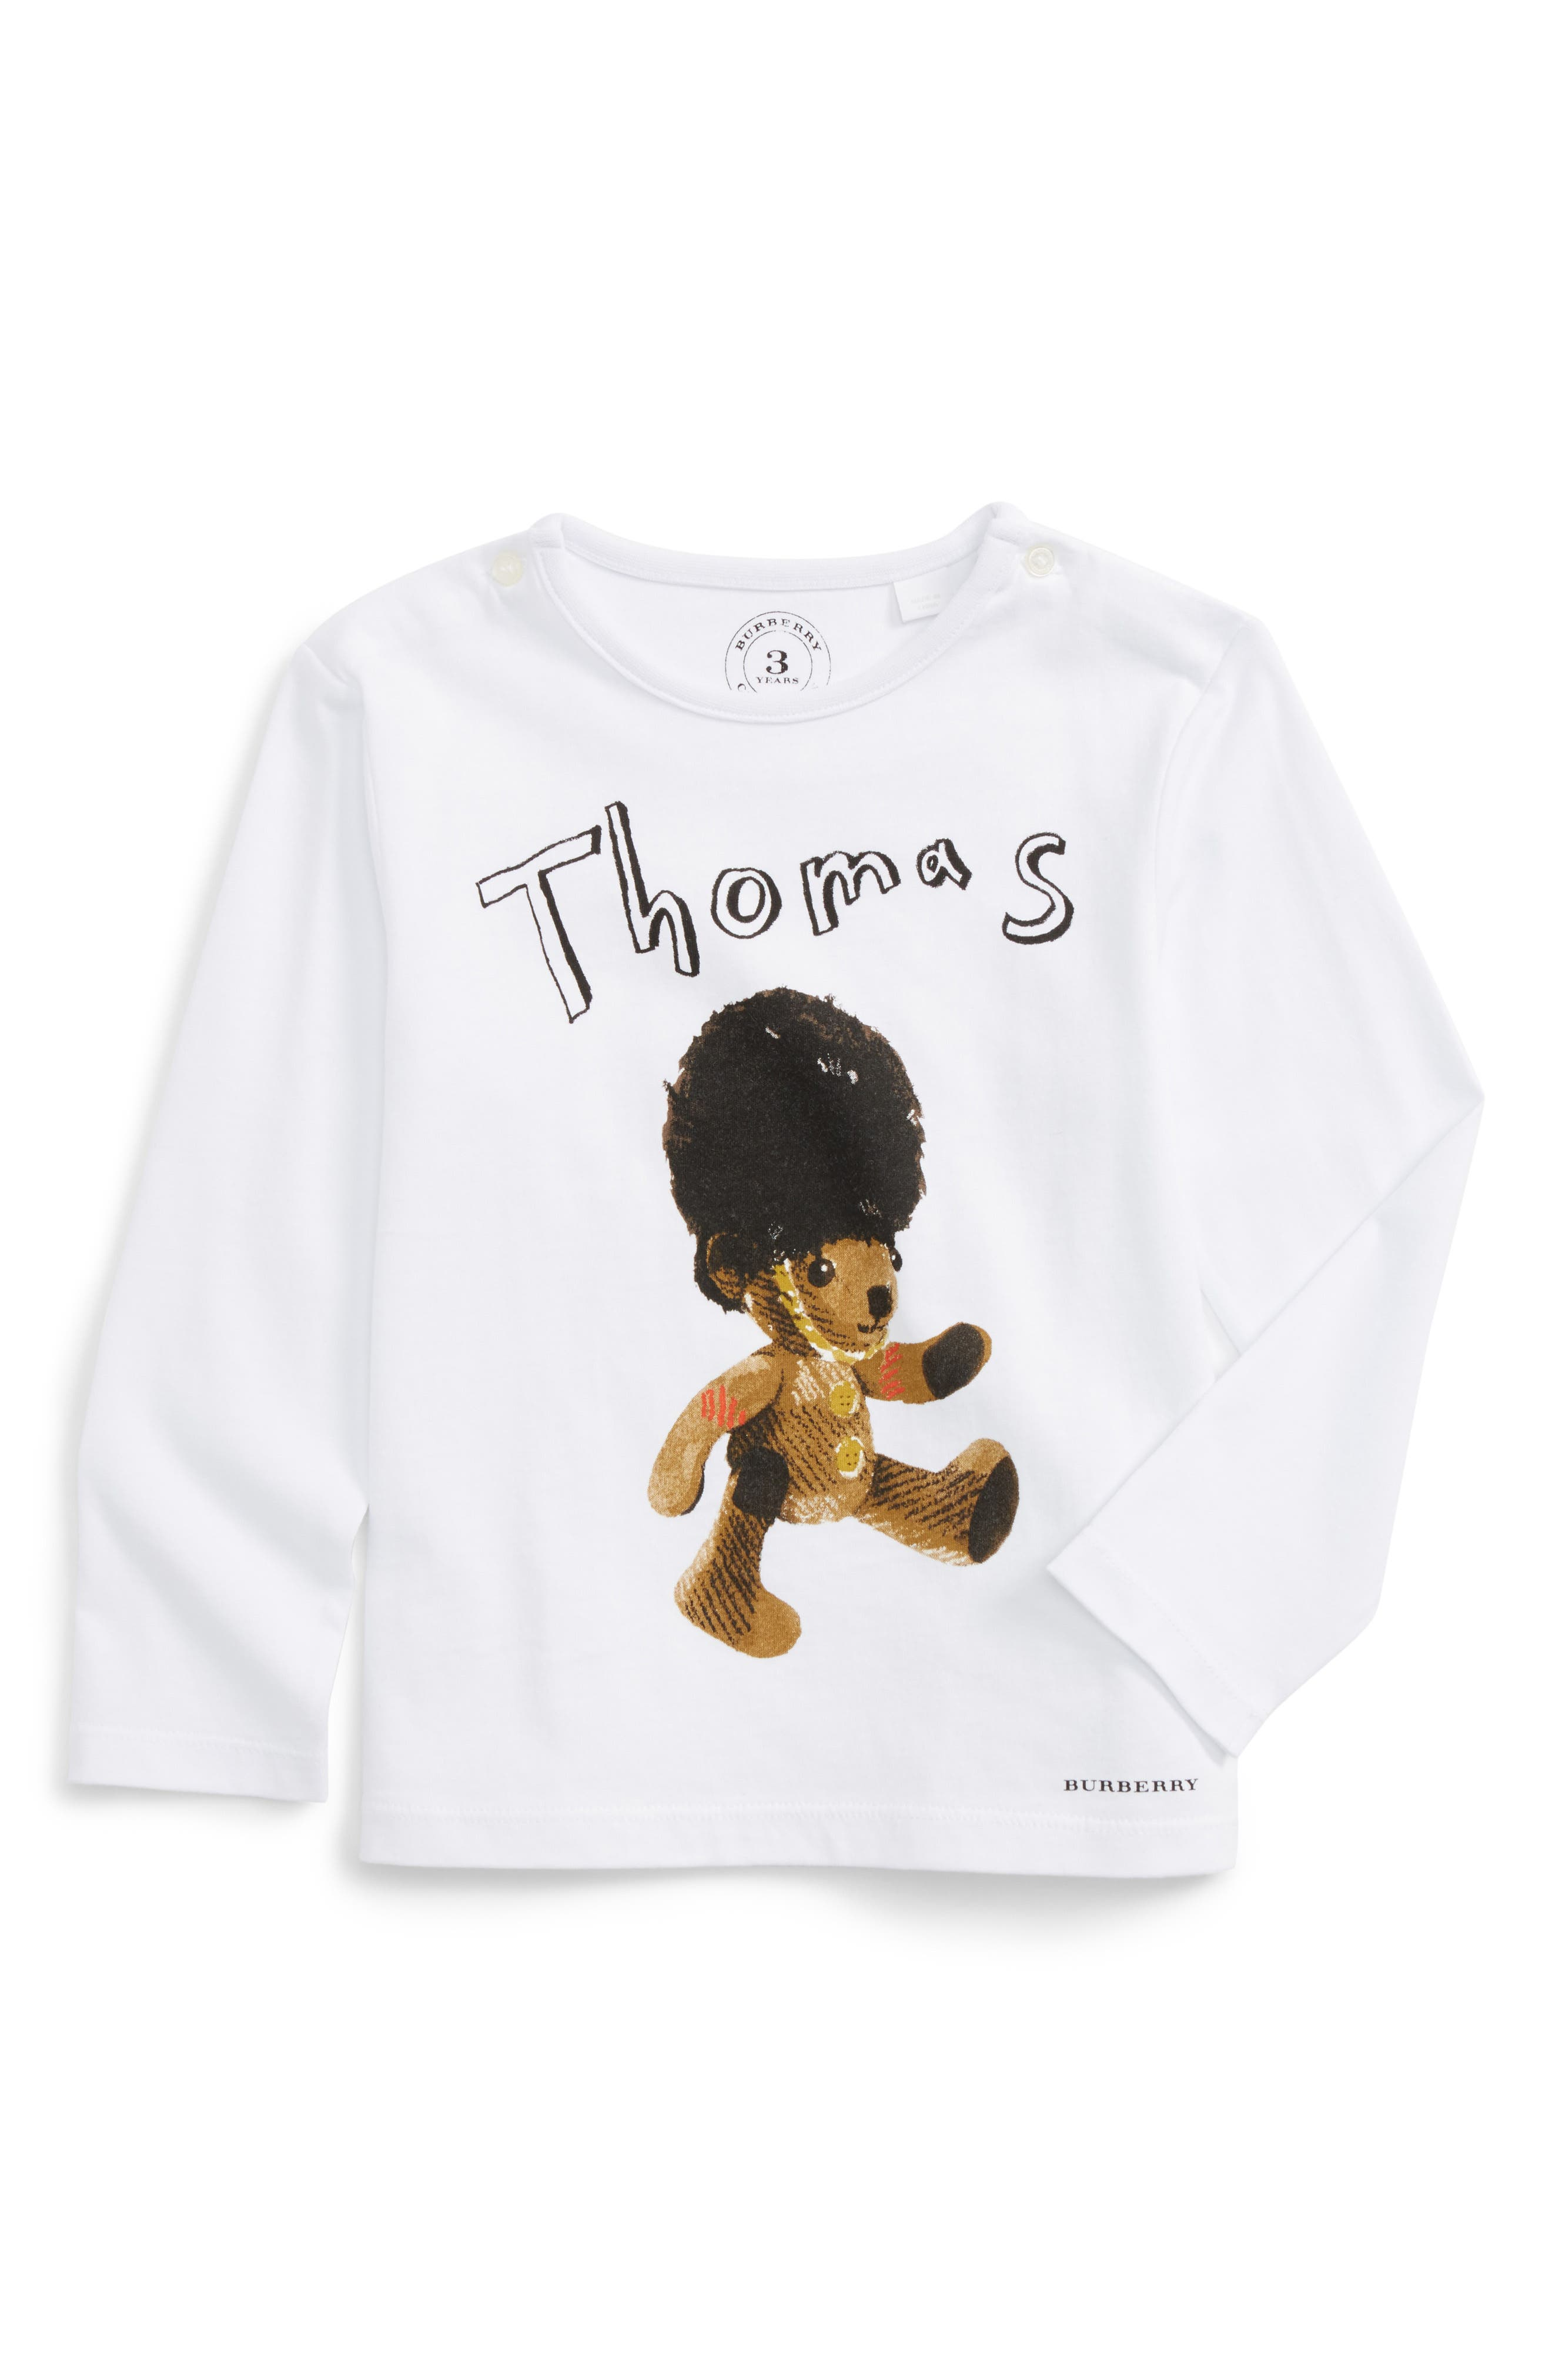 Burberry Thomas Bear Graphic T-Shirt (Toddler Boys)